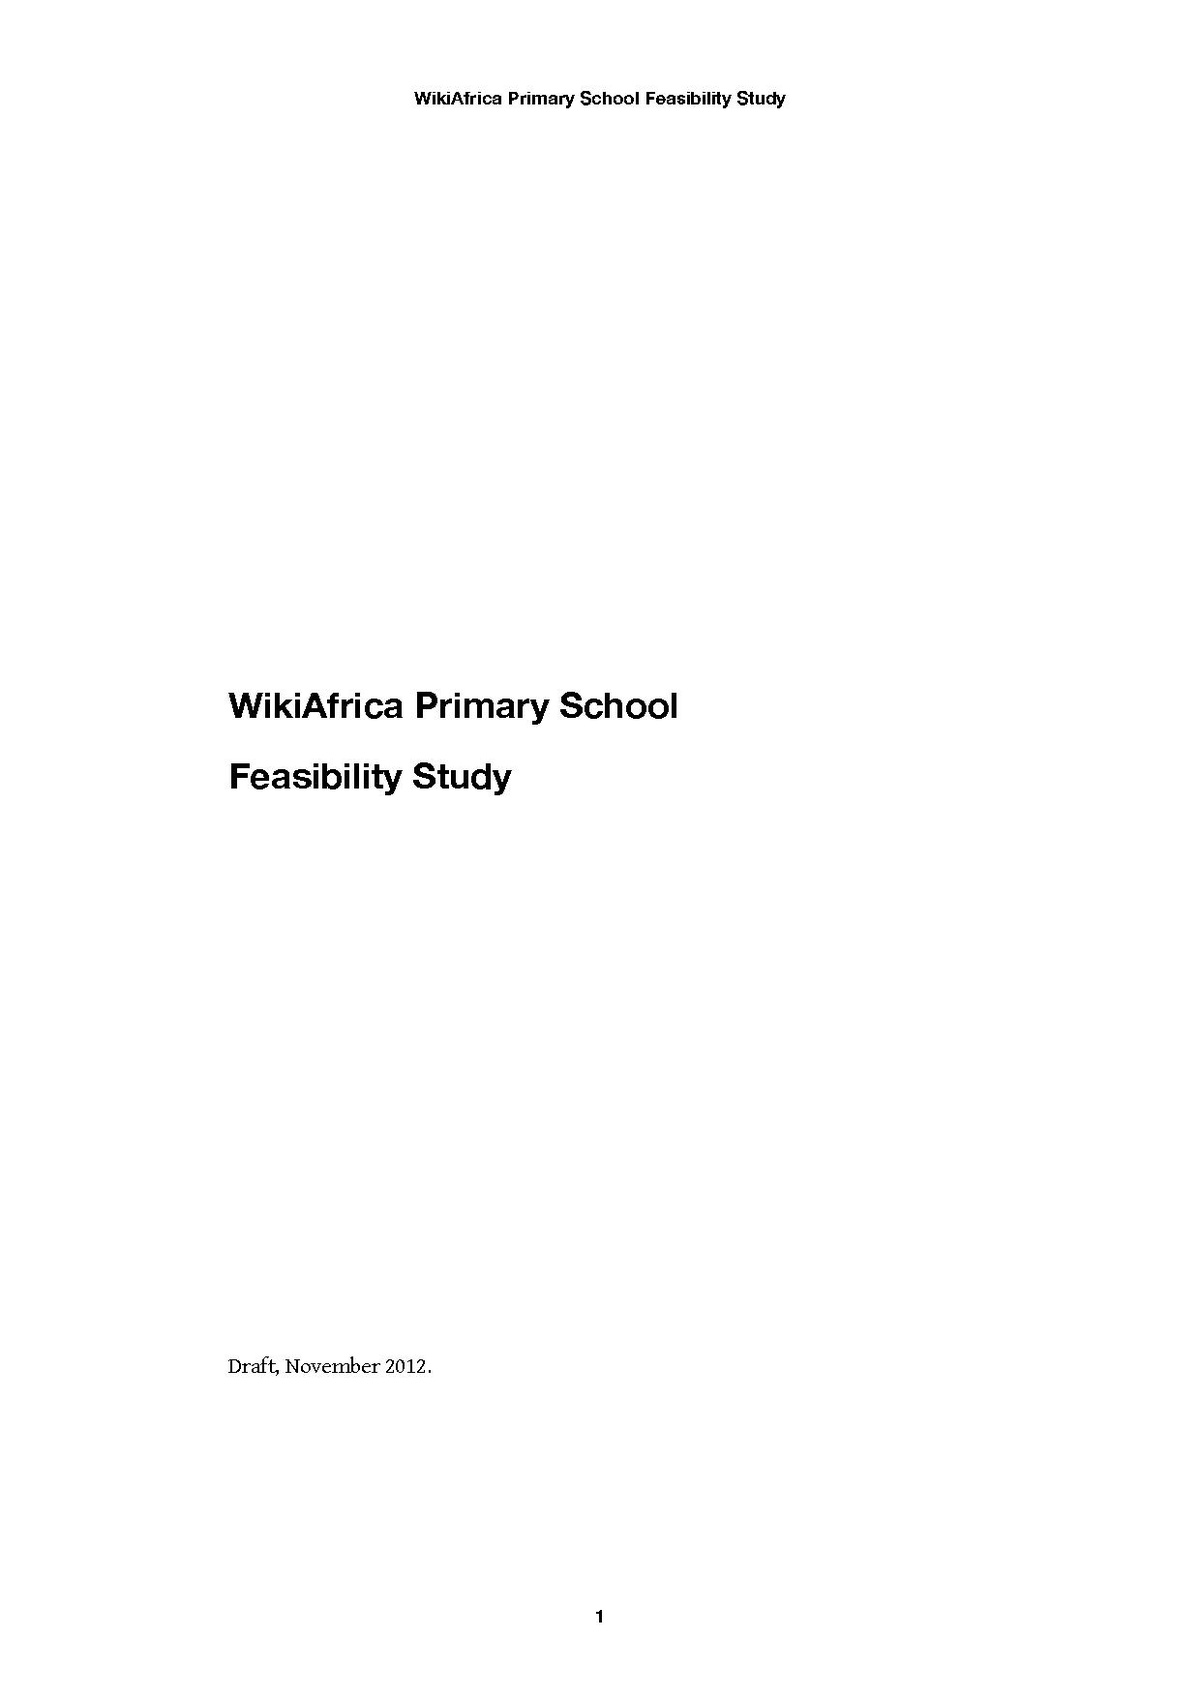 feasibility report on primary school Describe the primary access to existing school facilities is difficult undertaken prior to embarking on a feasibility study: feasibility.